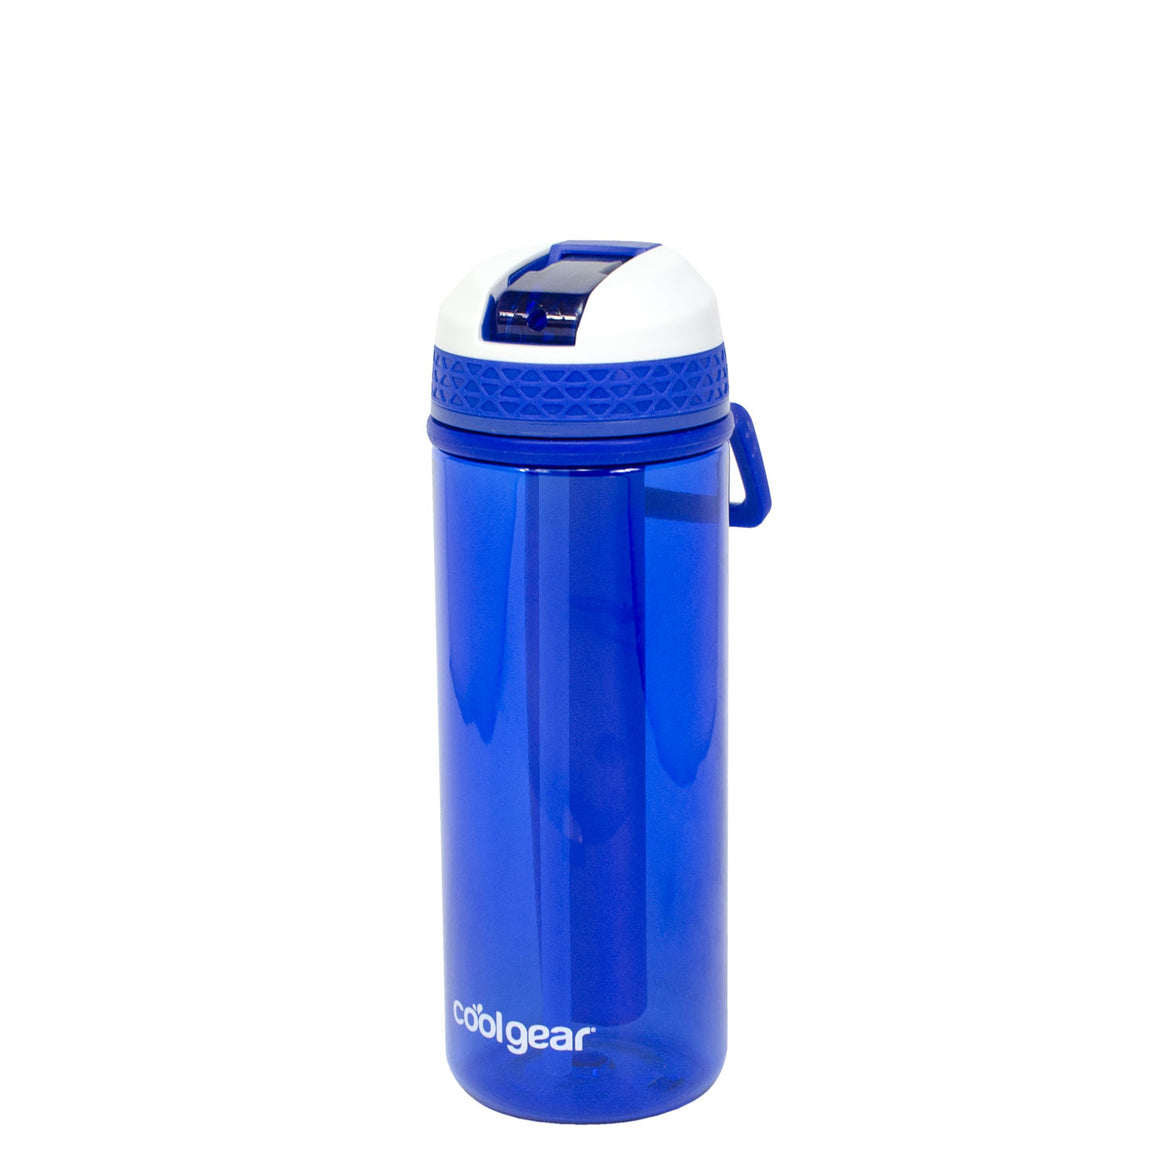 8f55c83887 Water Bottles   Stainless Steel, Reusable, Large Volume   Cool Gear